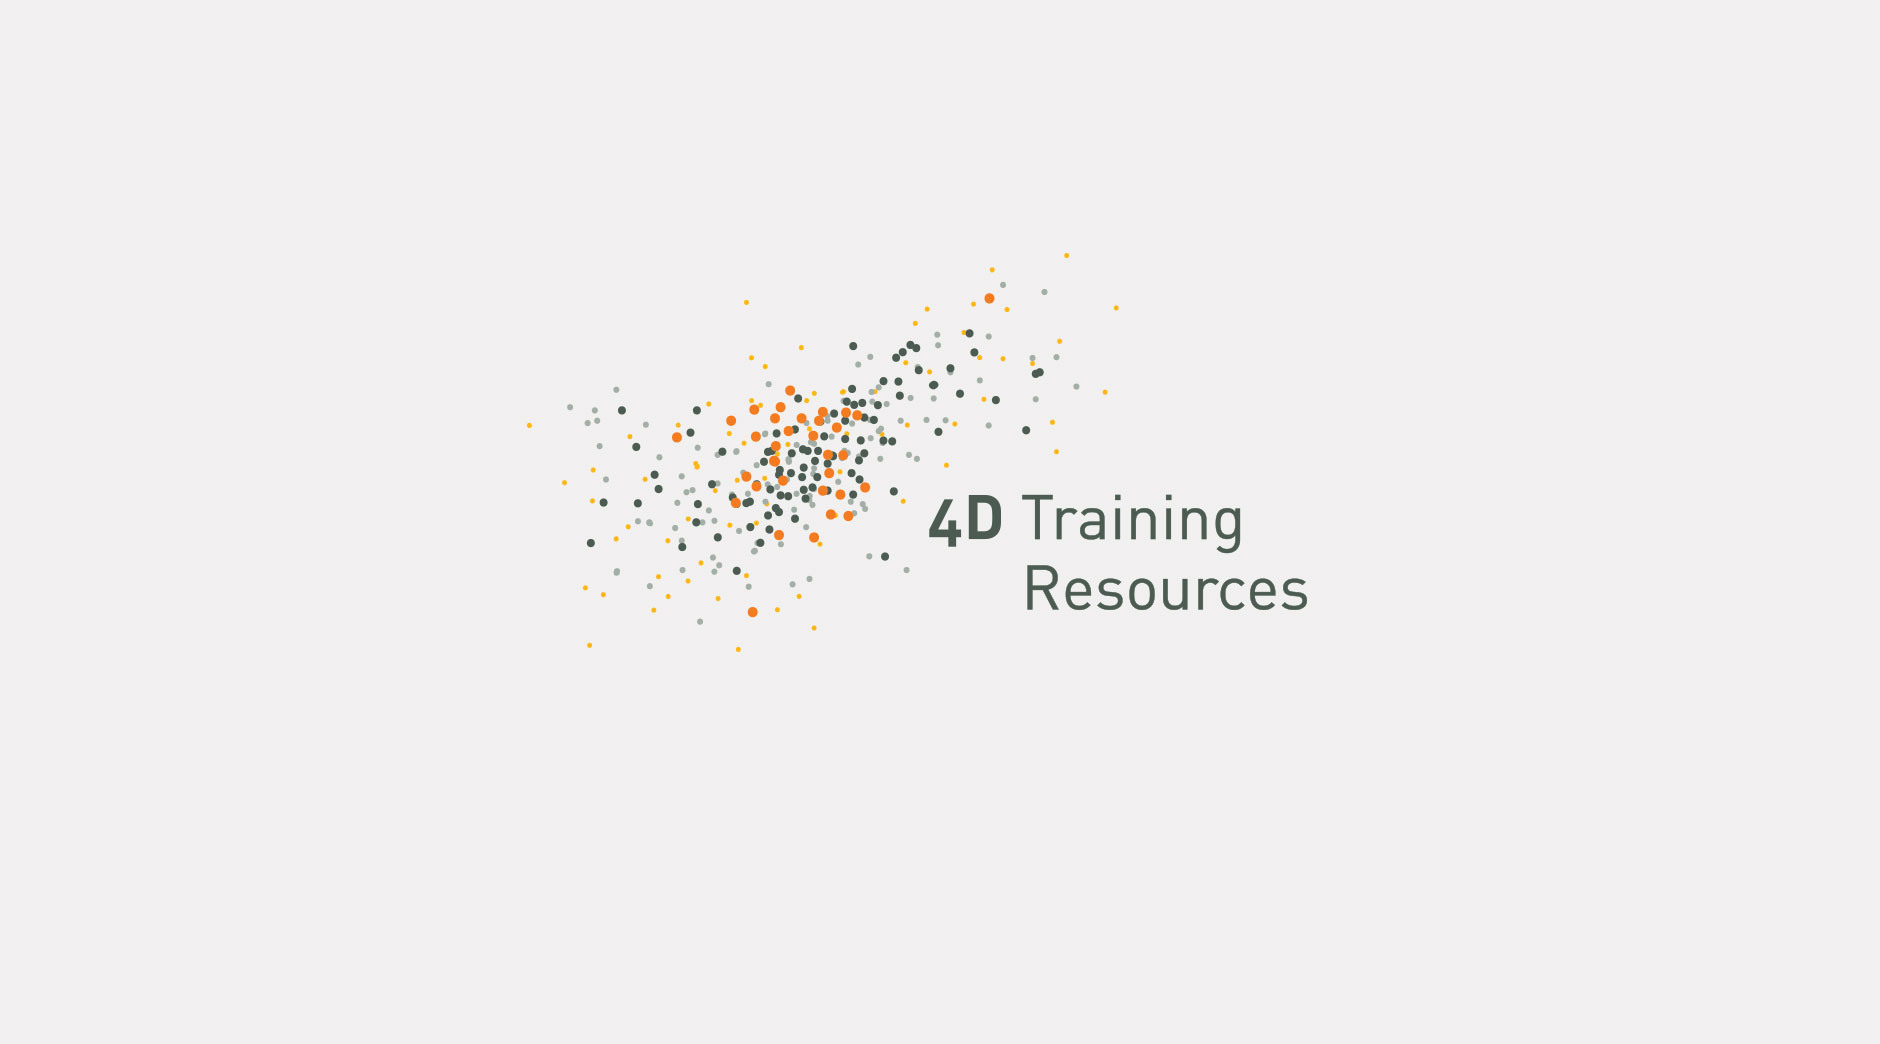 4D Training Resources